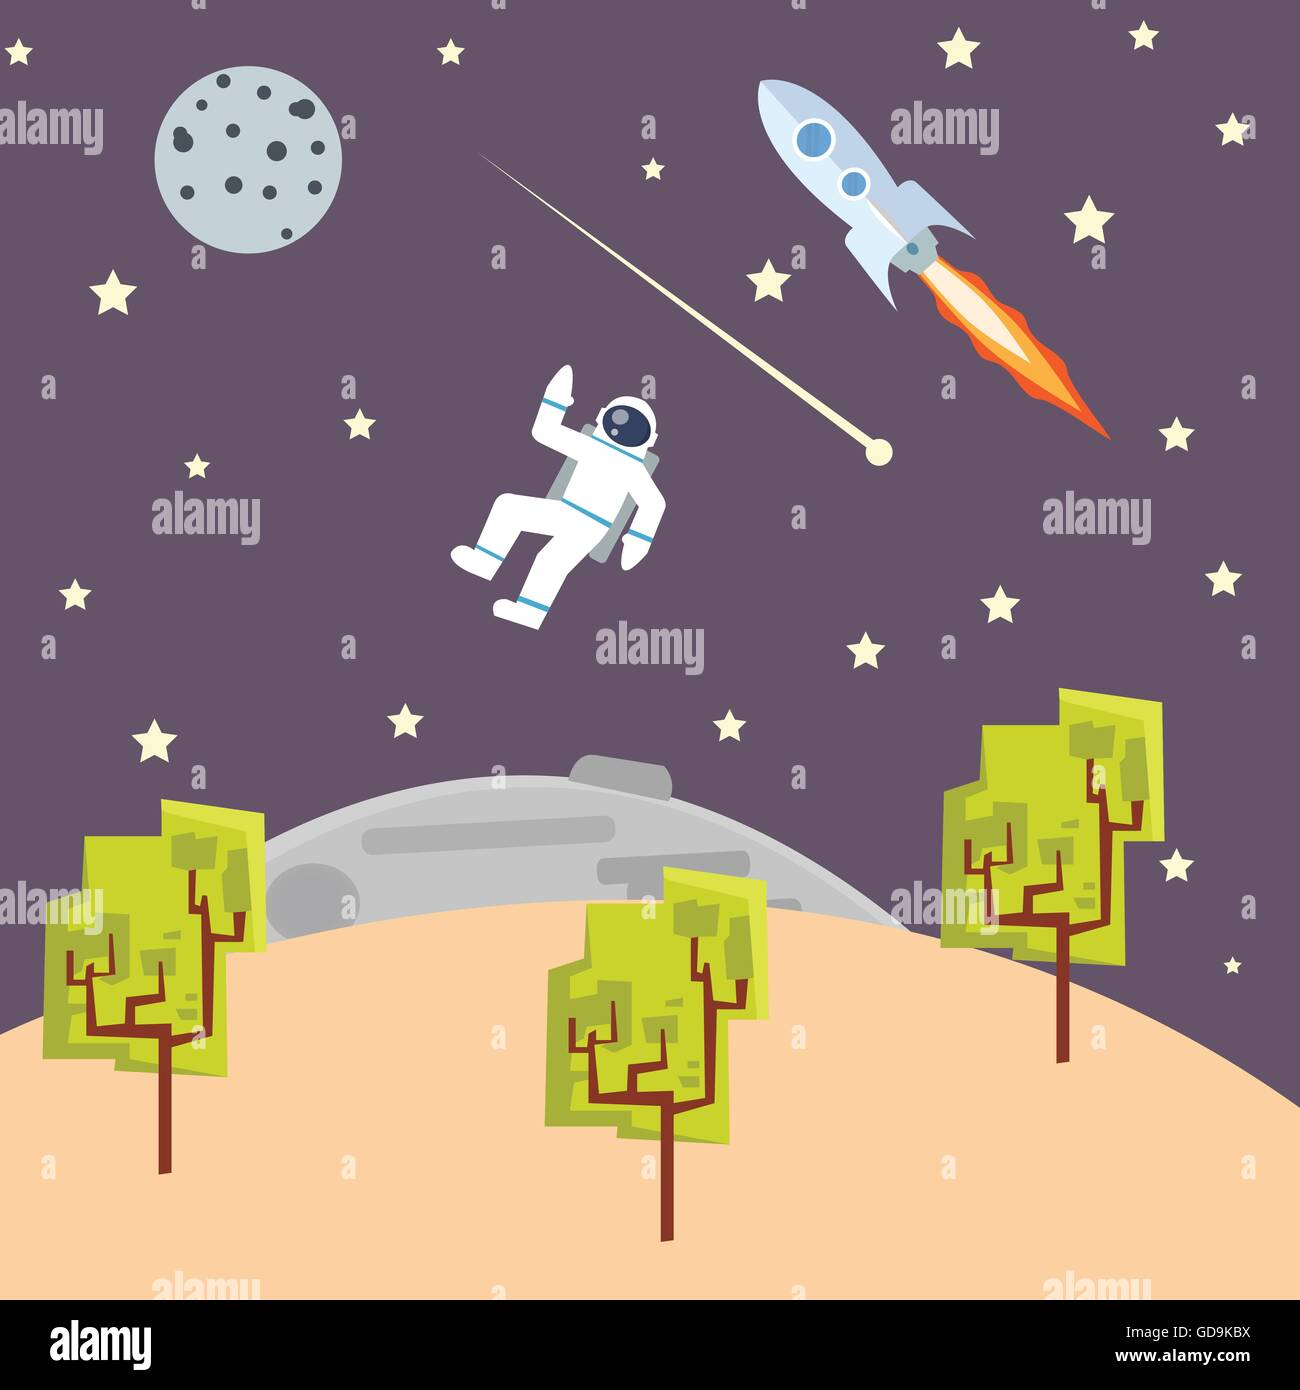 Outer Space Illustration Kids Style With Spaceman Rocket Ship Stock